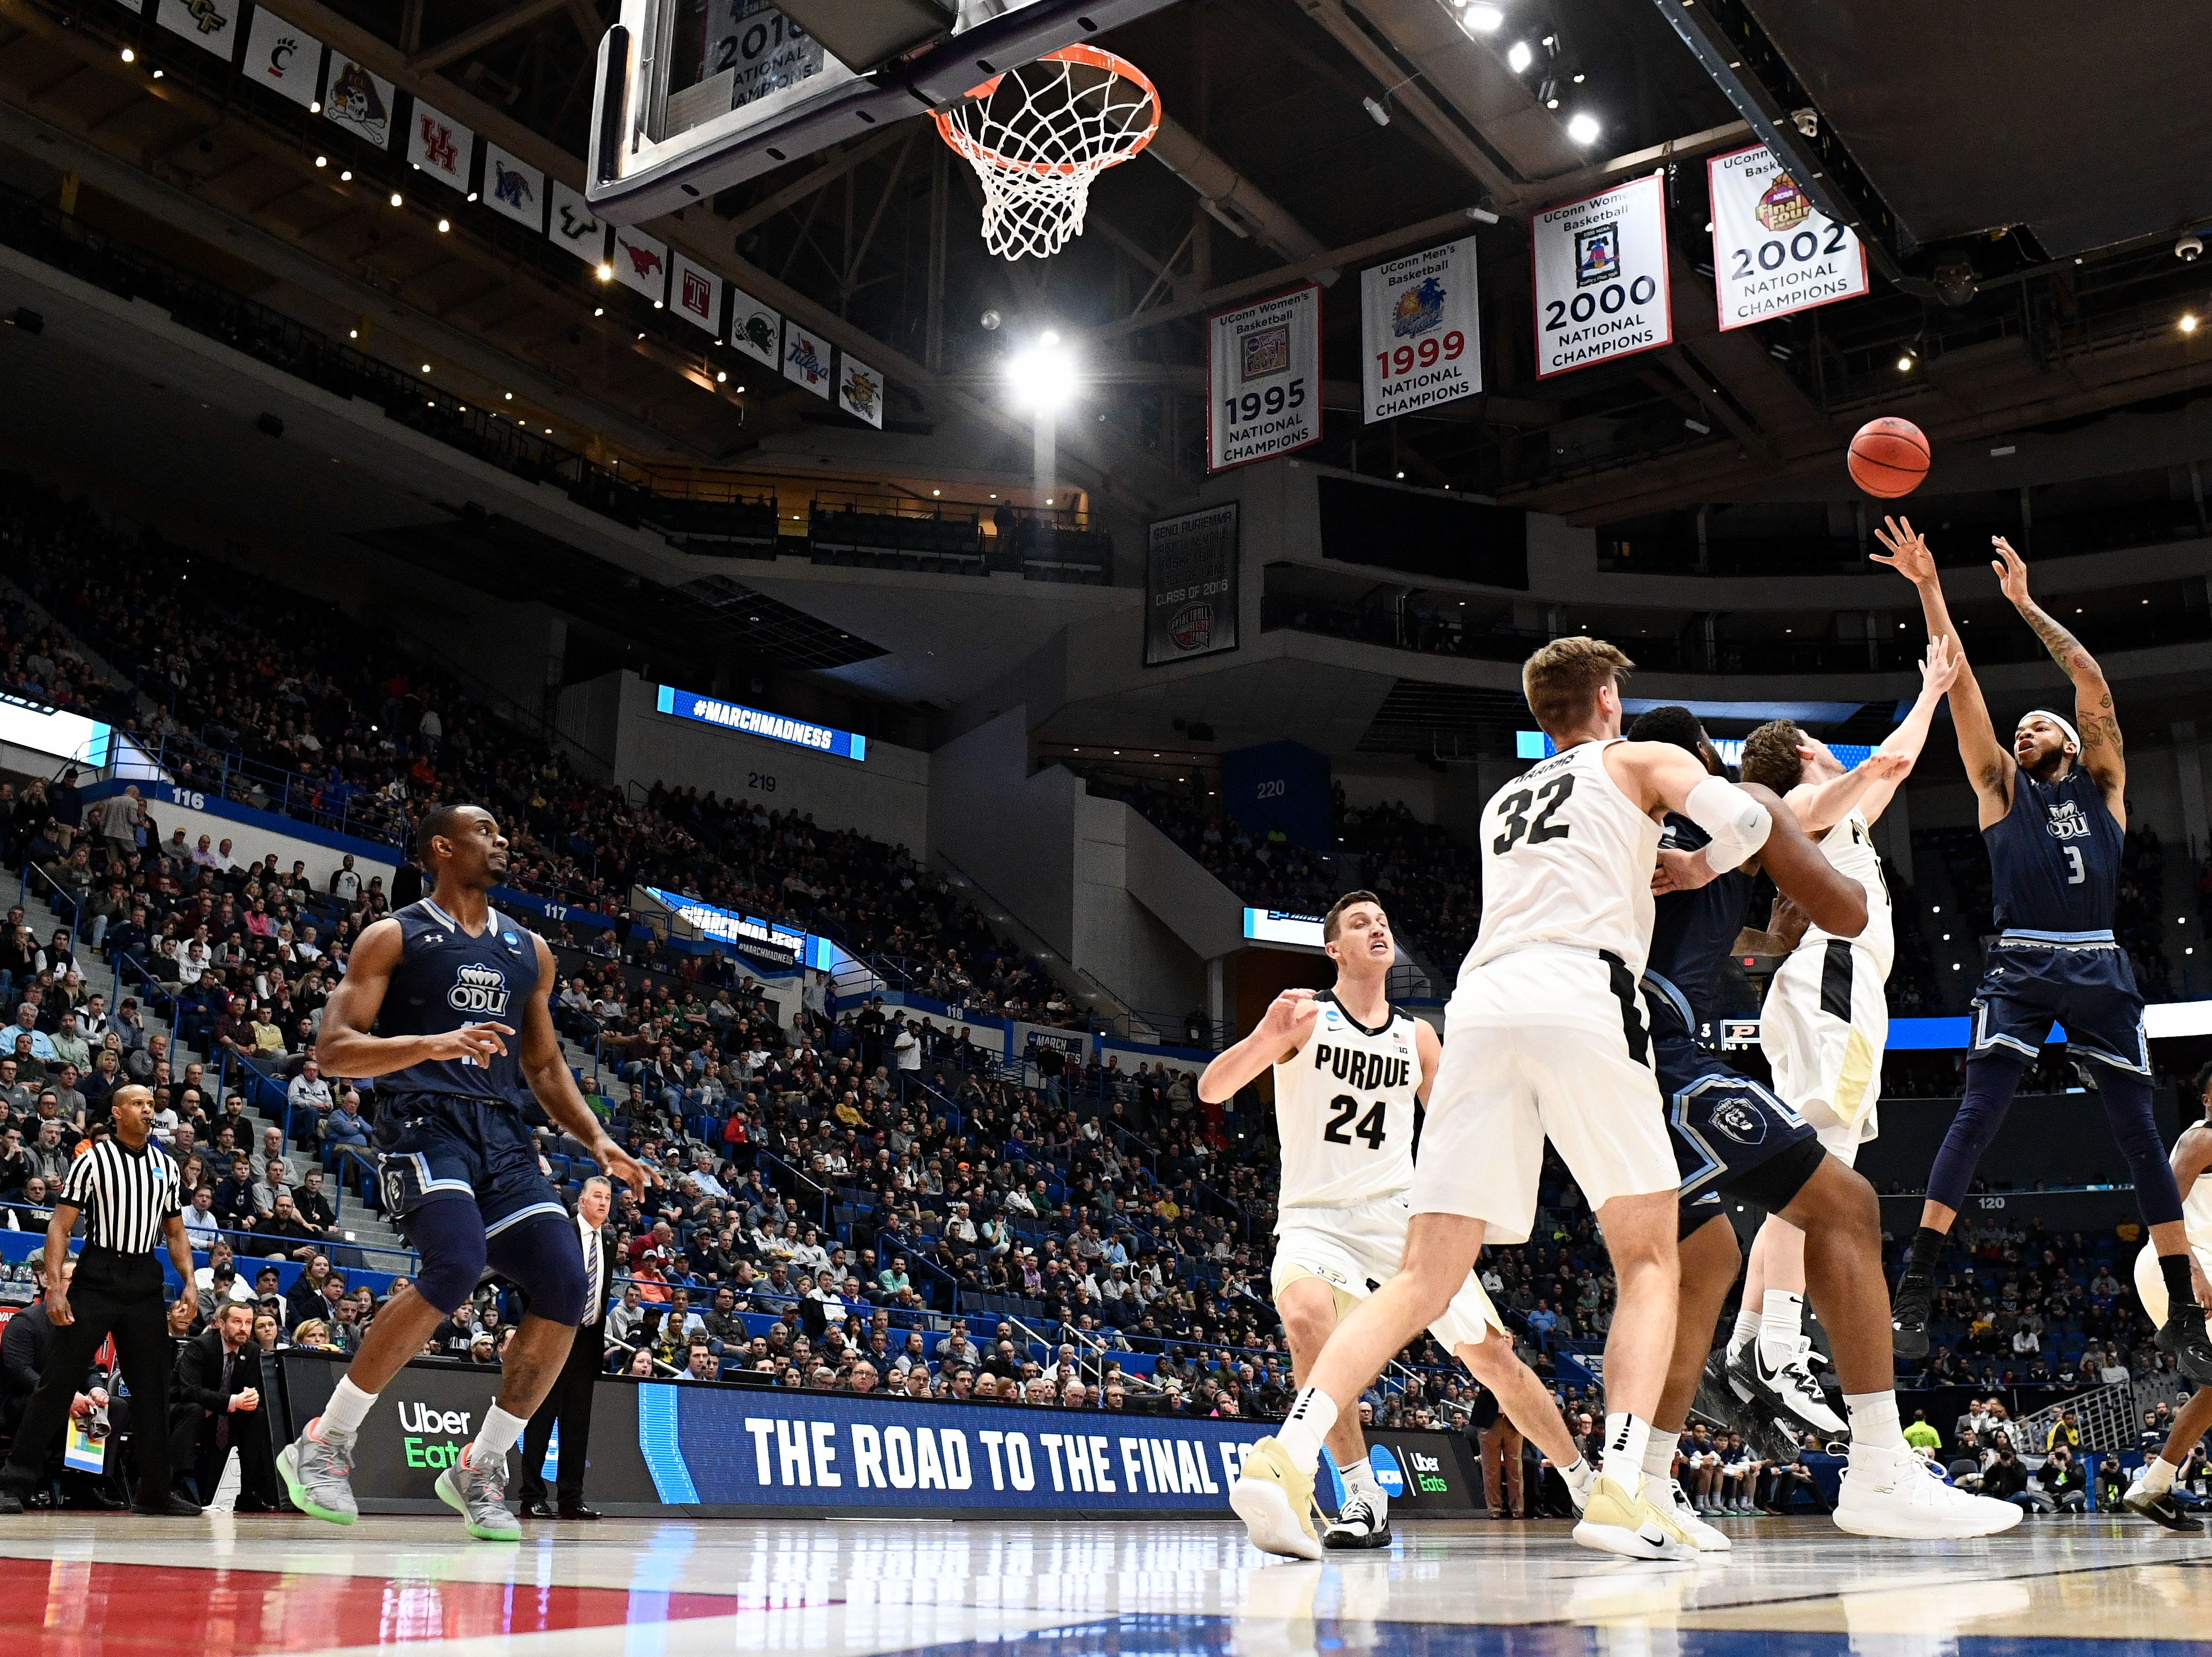 Mar 21, 2019; Hartford, CT, USA; Old Dominion Monarchs guard B.J. Stith (3) attempts a shot against the Purdue Boilermakers during the first half of a game in the first round of the 2019 NCAA Tournament at XL Center. Mandatory Credit: Robert Deutsch-USA TODAY Sports